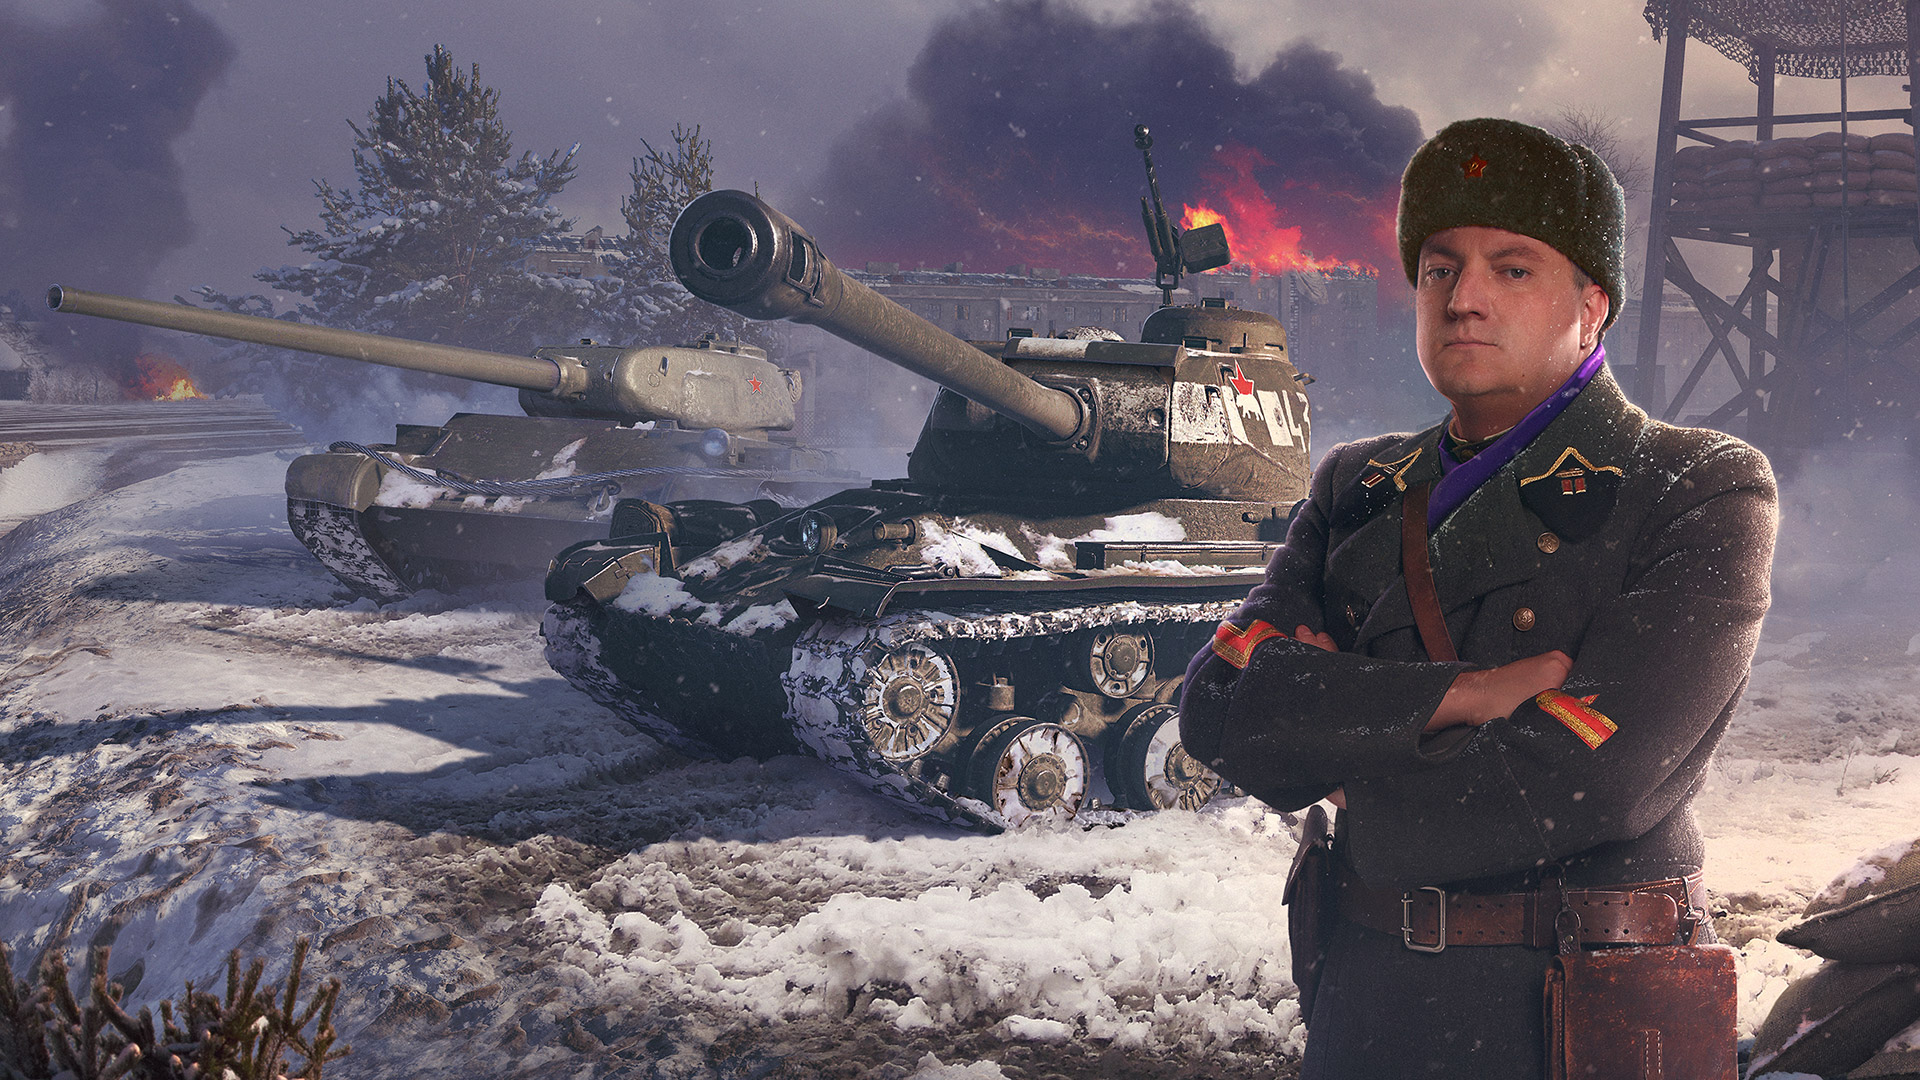 Как получить Twitch Prime Кило для World of Tanks за 5 минут [11 пакет] +подарки ветеранам (набор)